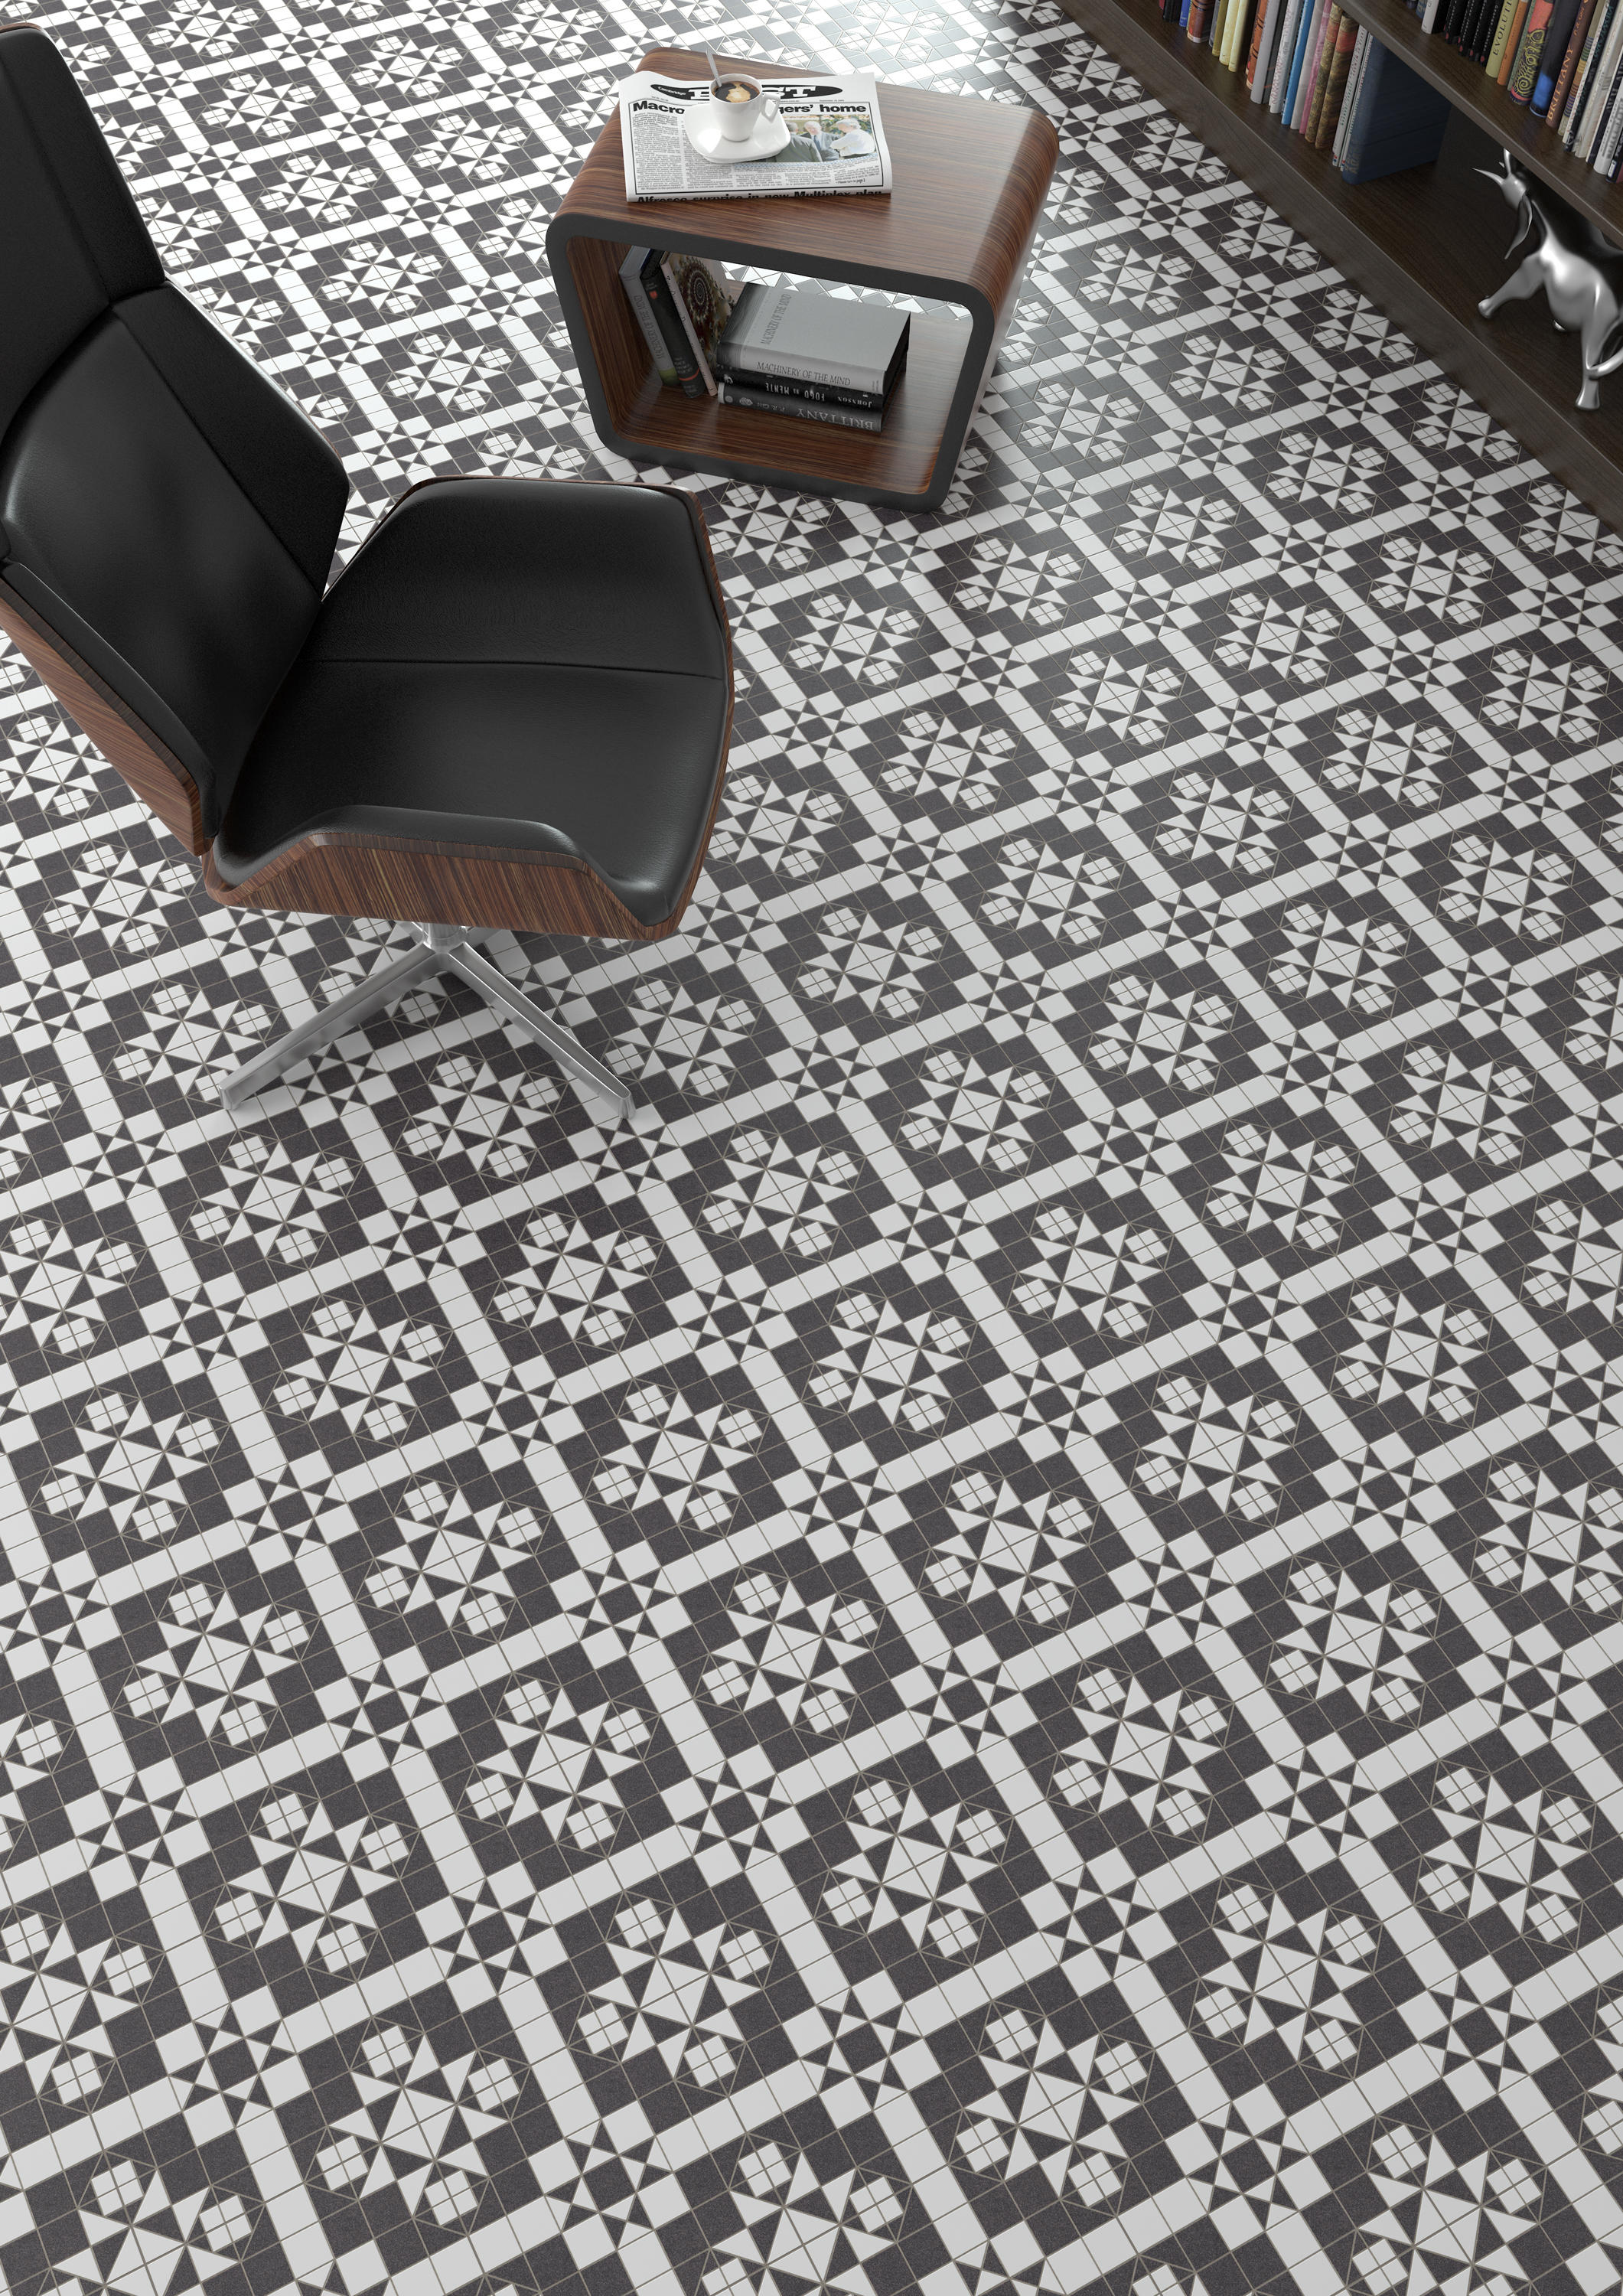 Central floor tiles from vives cermica architonic ambient images dailygadgetfo Images